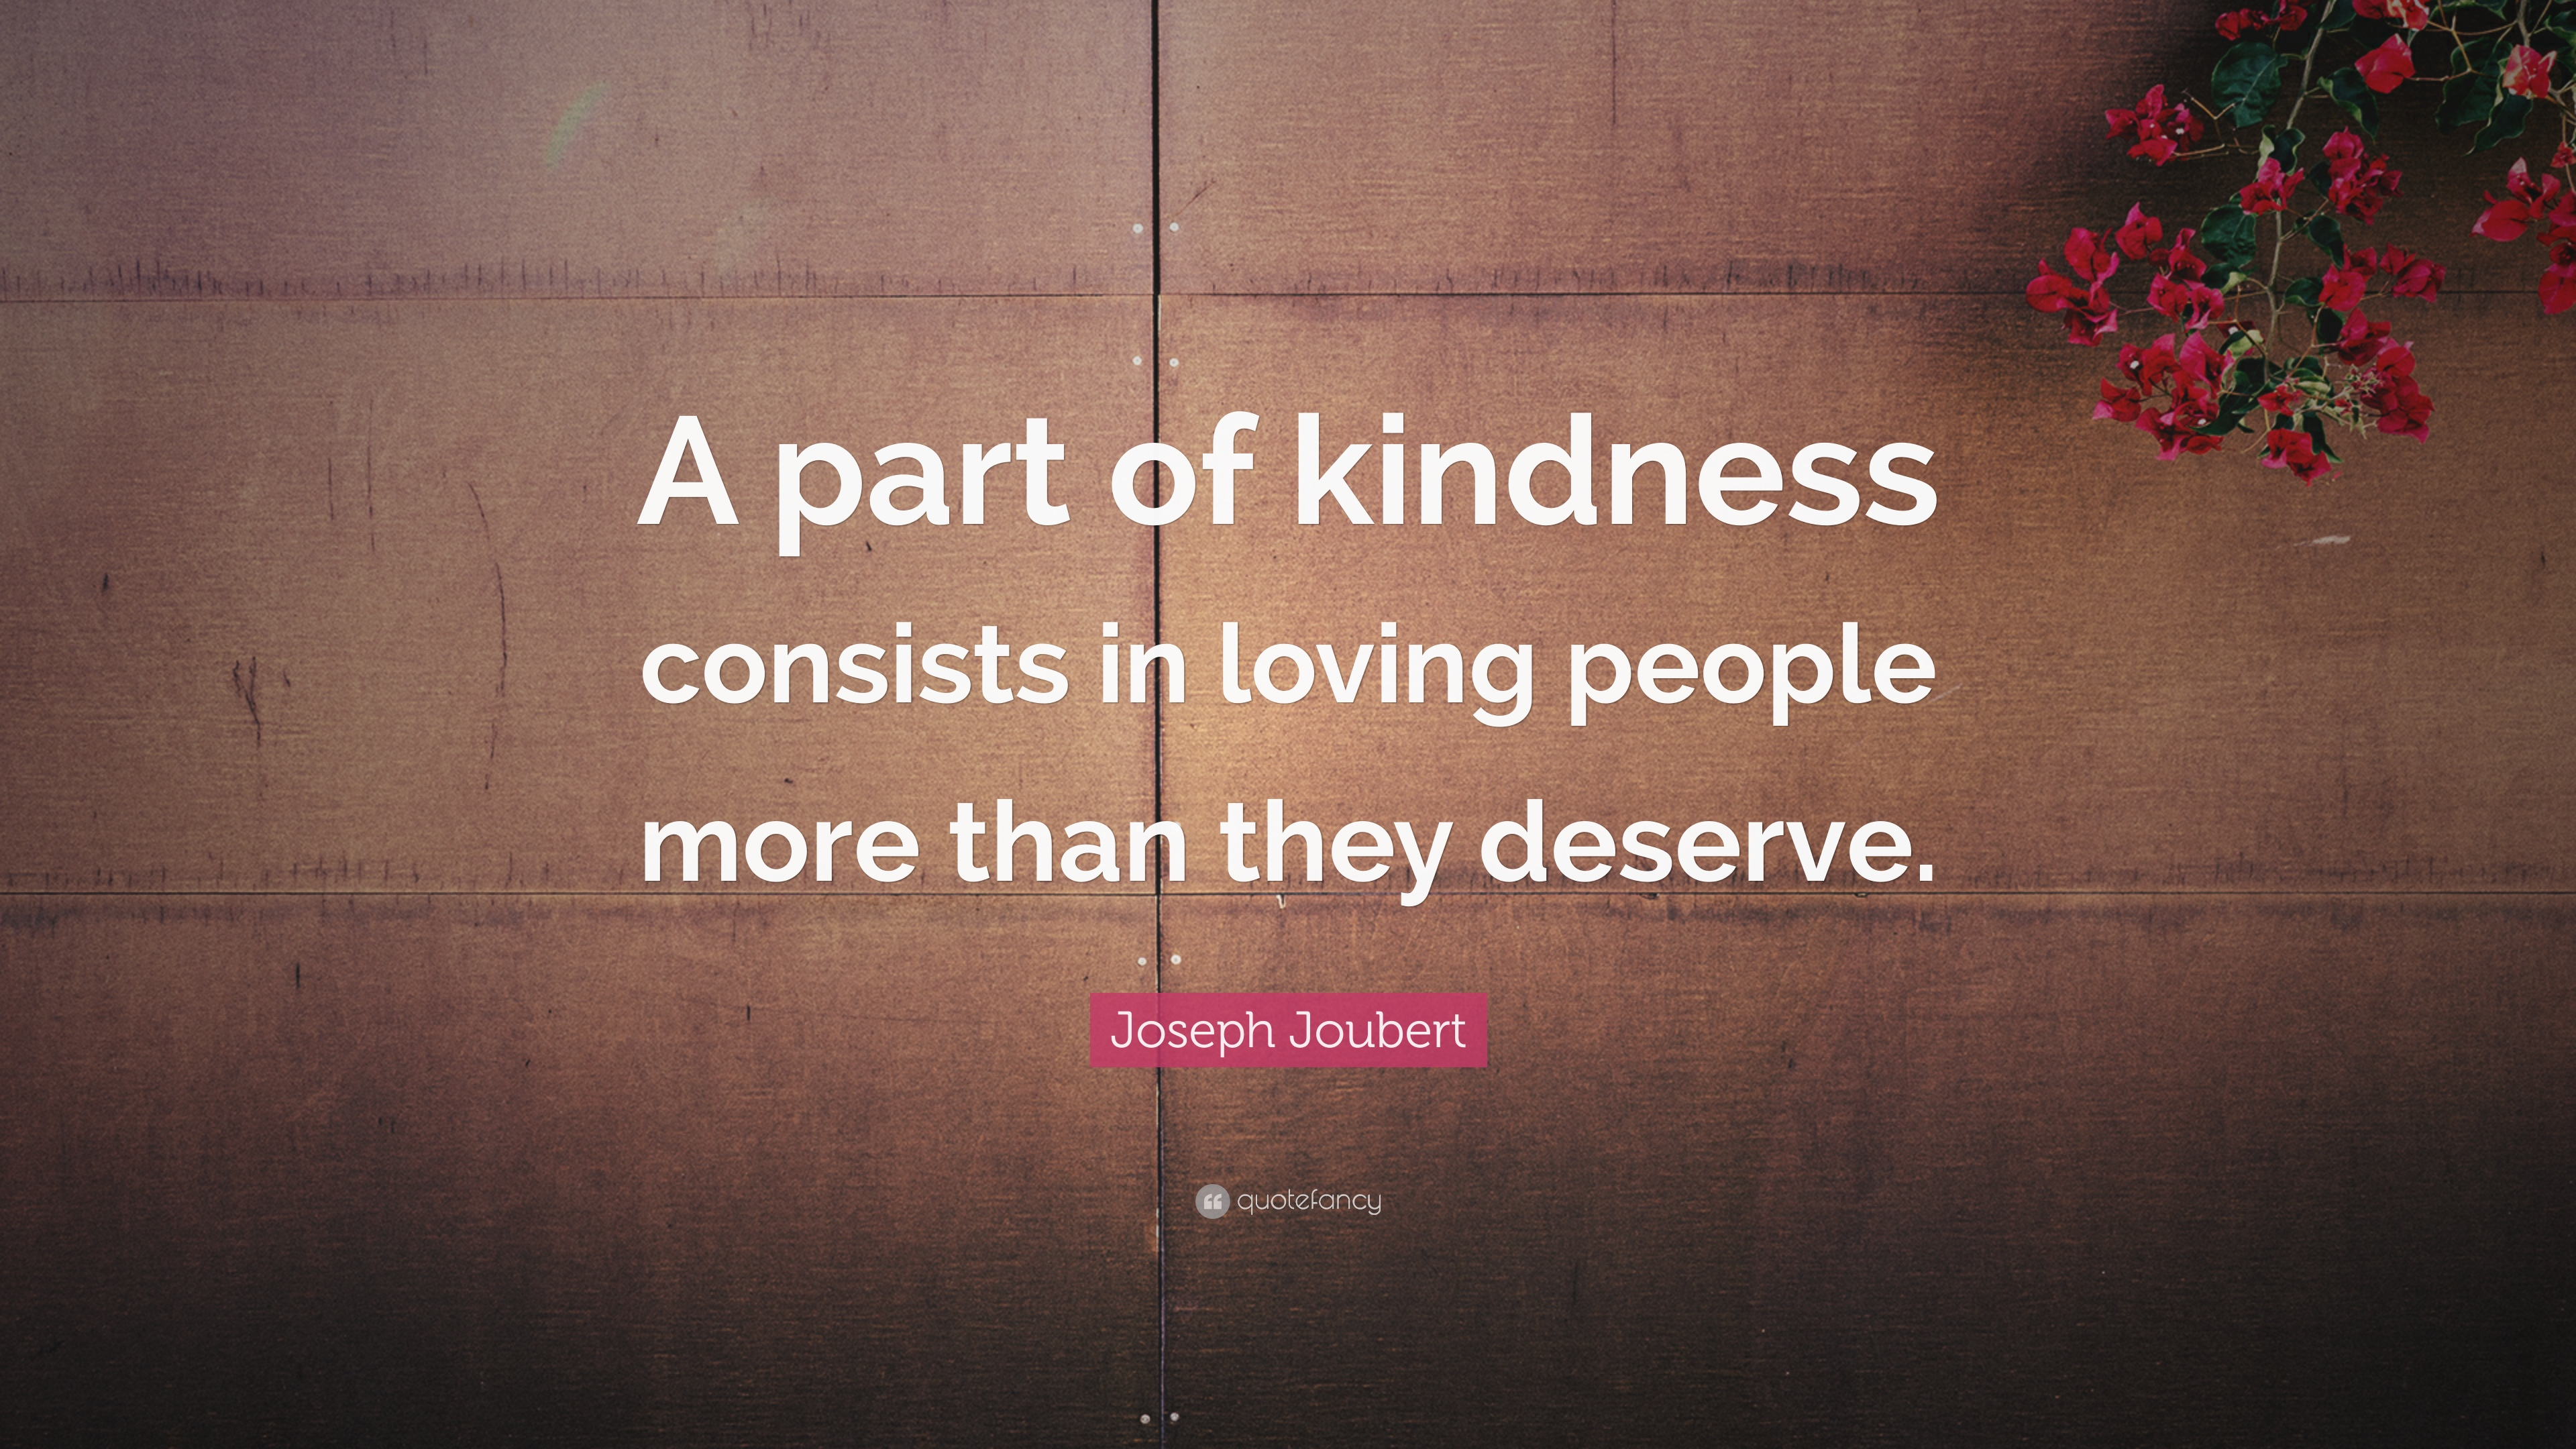 Loving Kindness Quotes Kindness Quotes 40 Wallpapers  Quotefancy